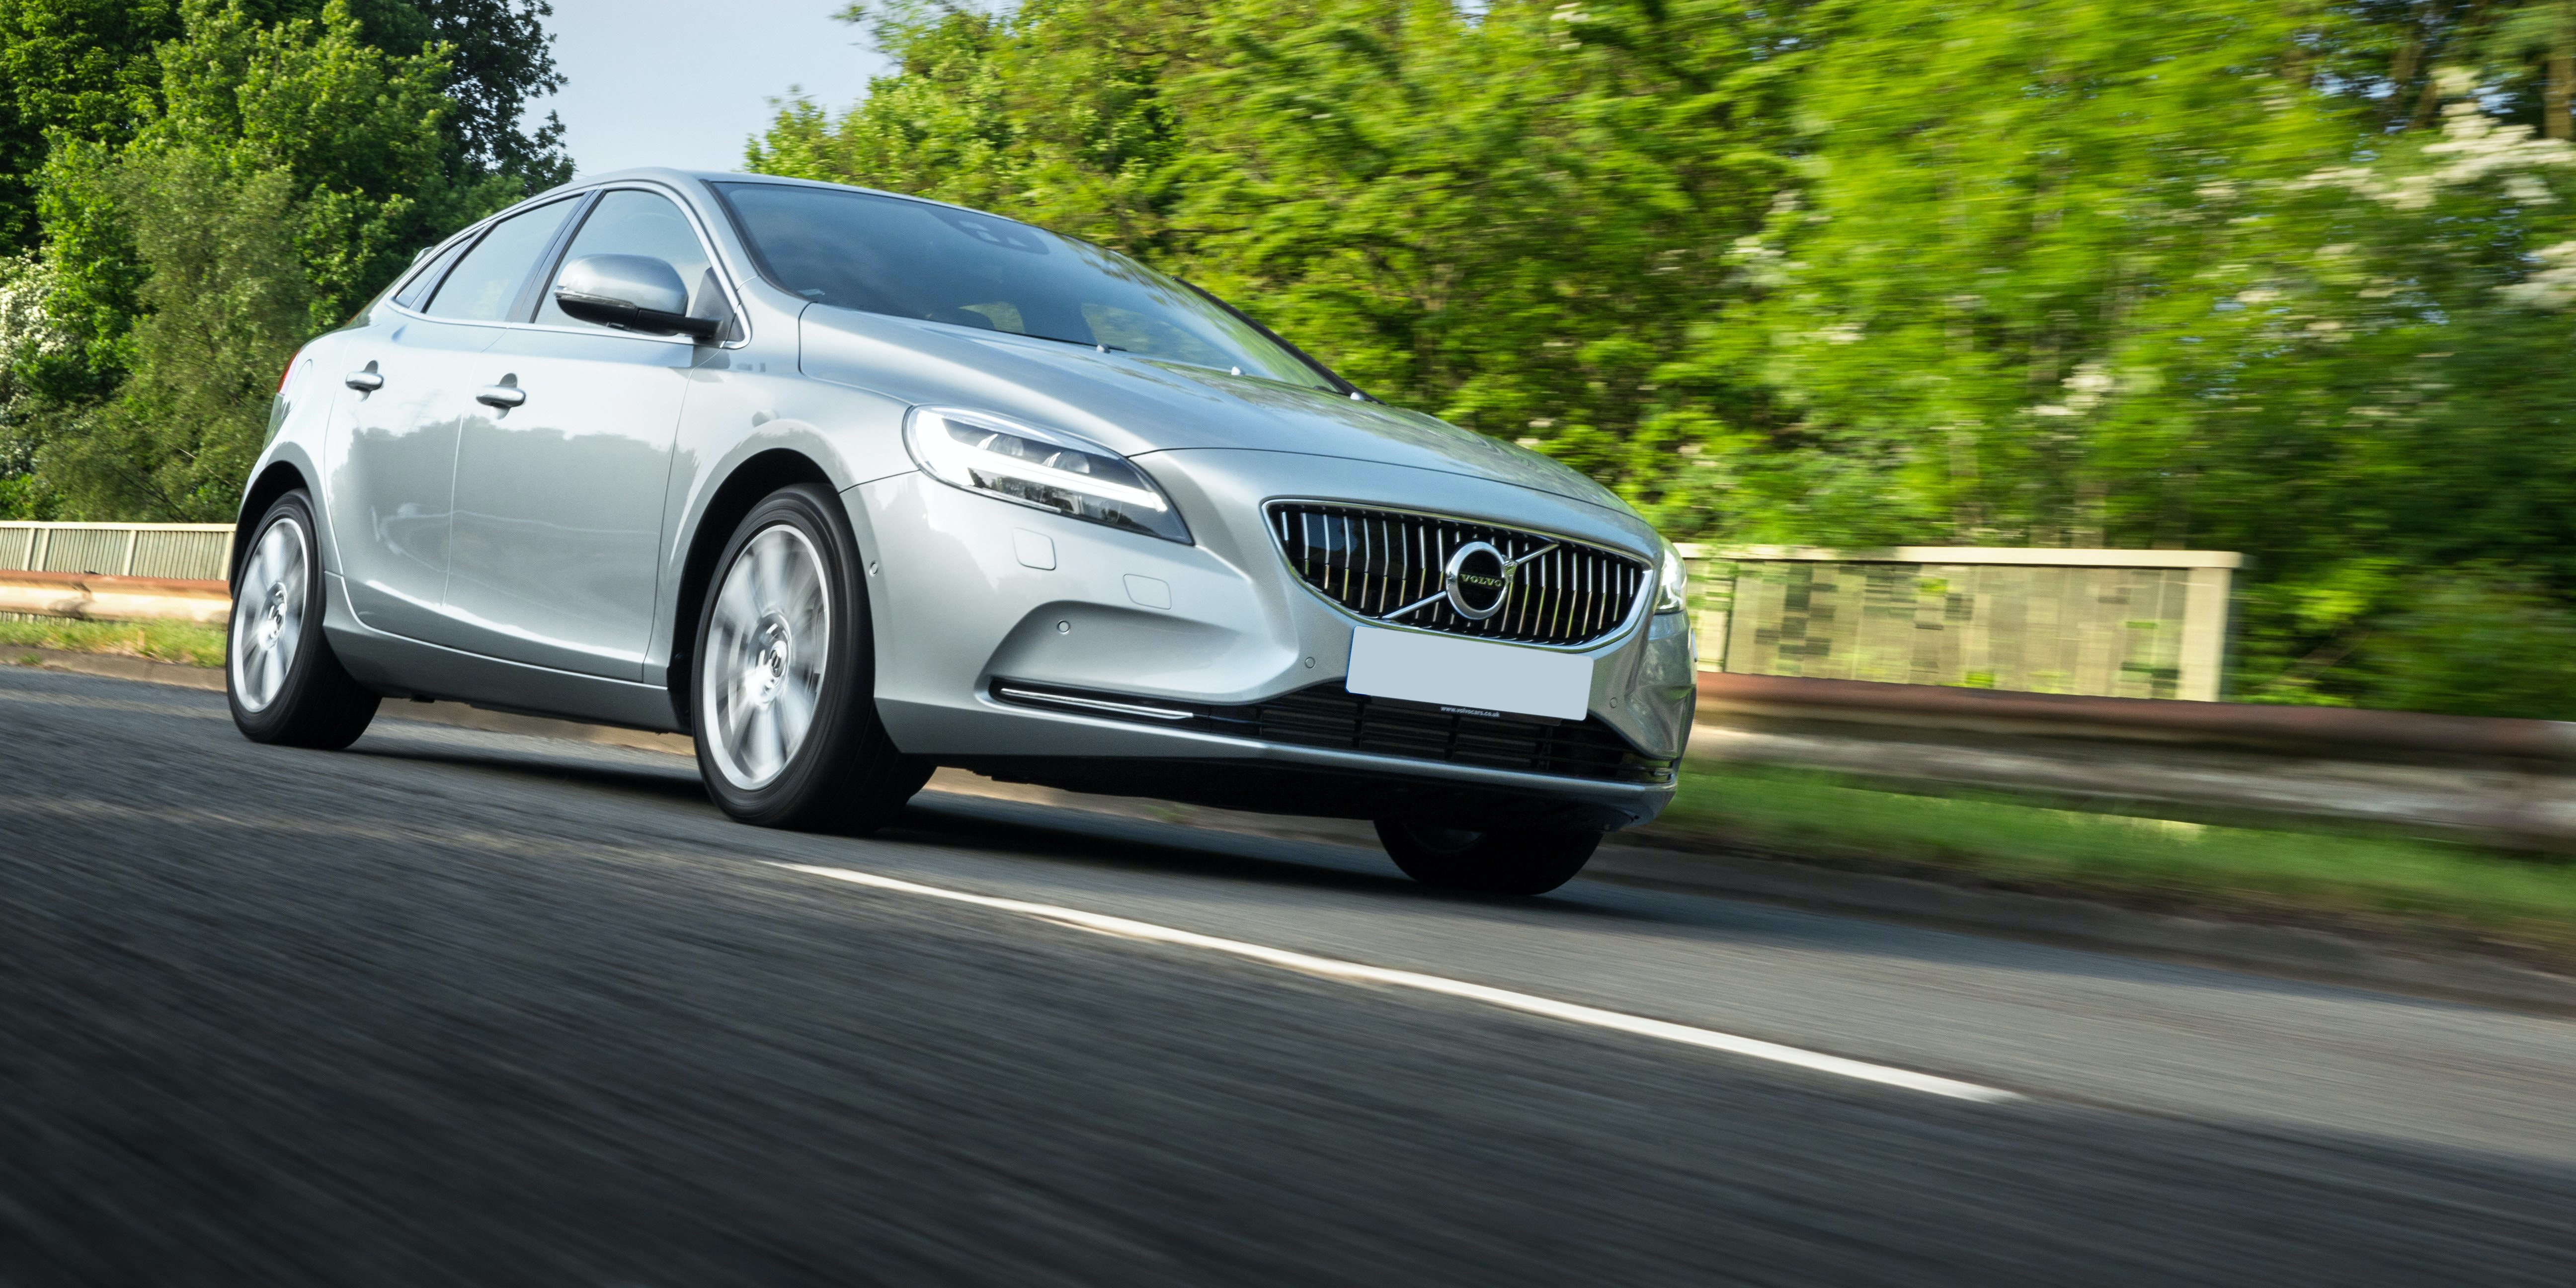 The V40 is not a very comfortable car, especially if you choose the R-Design model